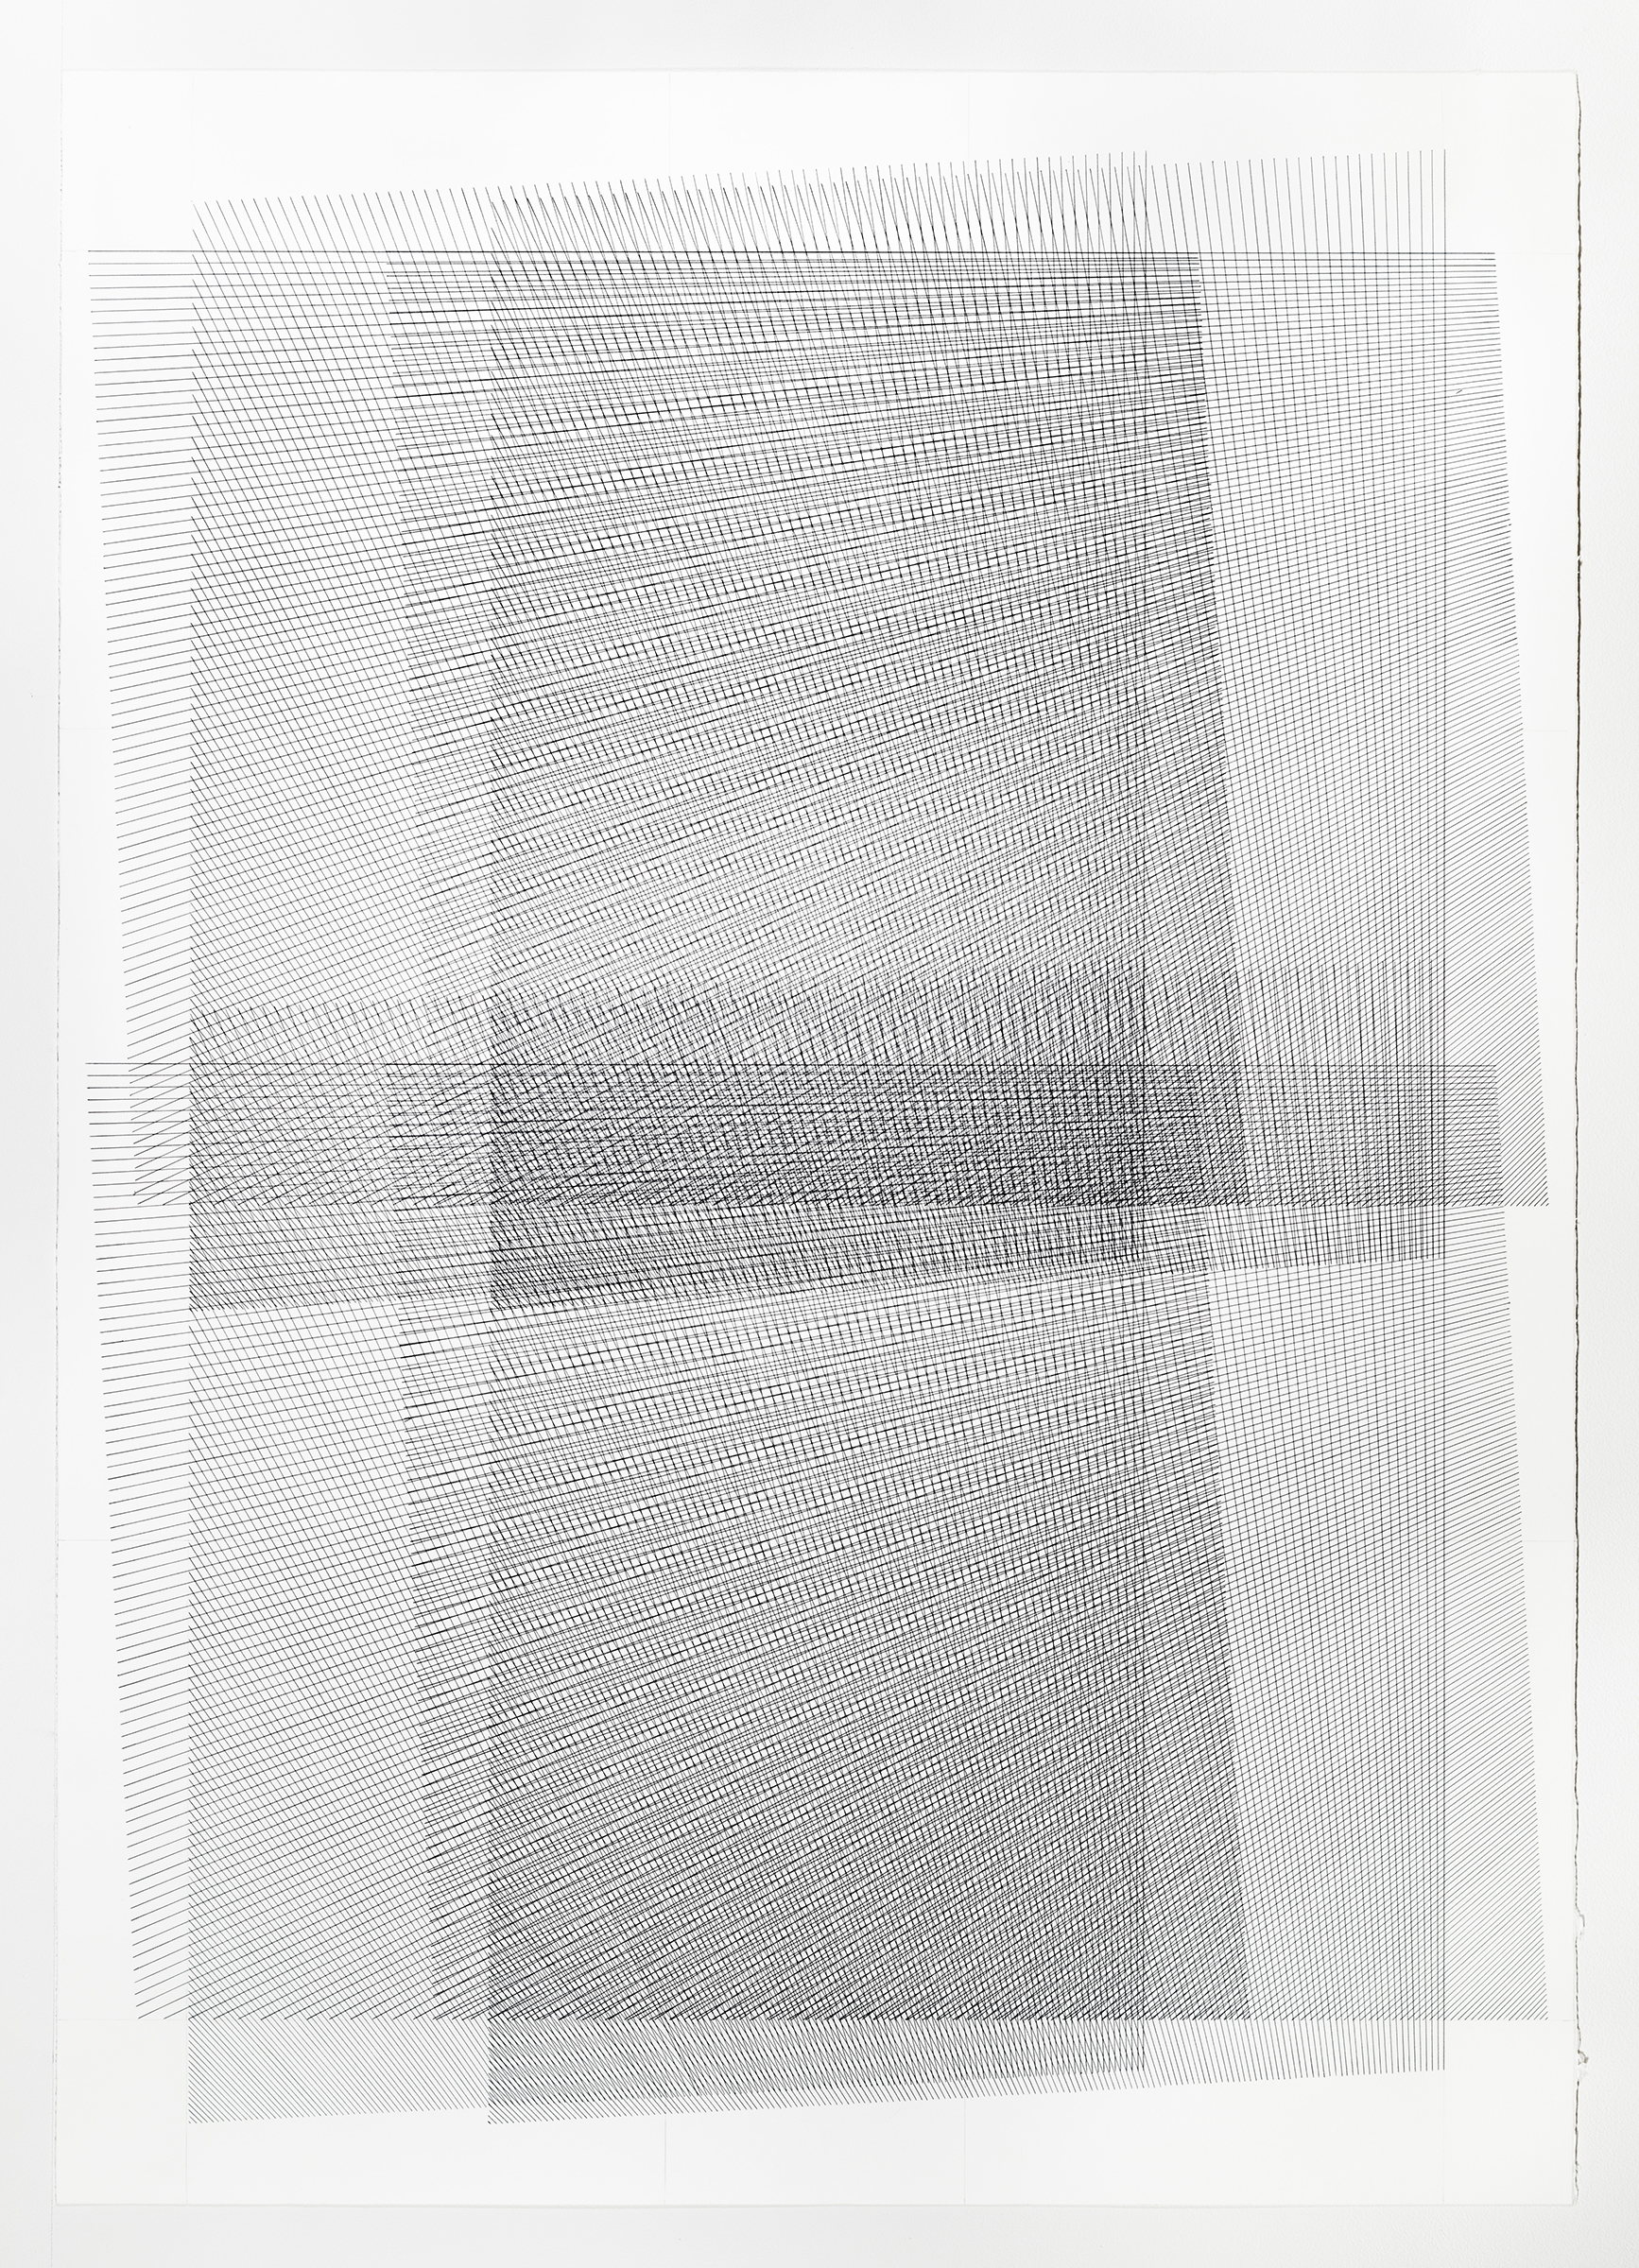 3 of 5; additive series, grey, 40 x 30 inches, 2016